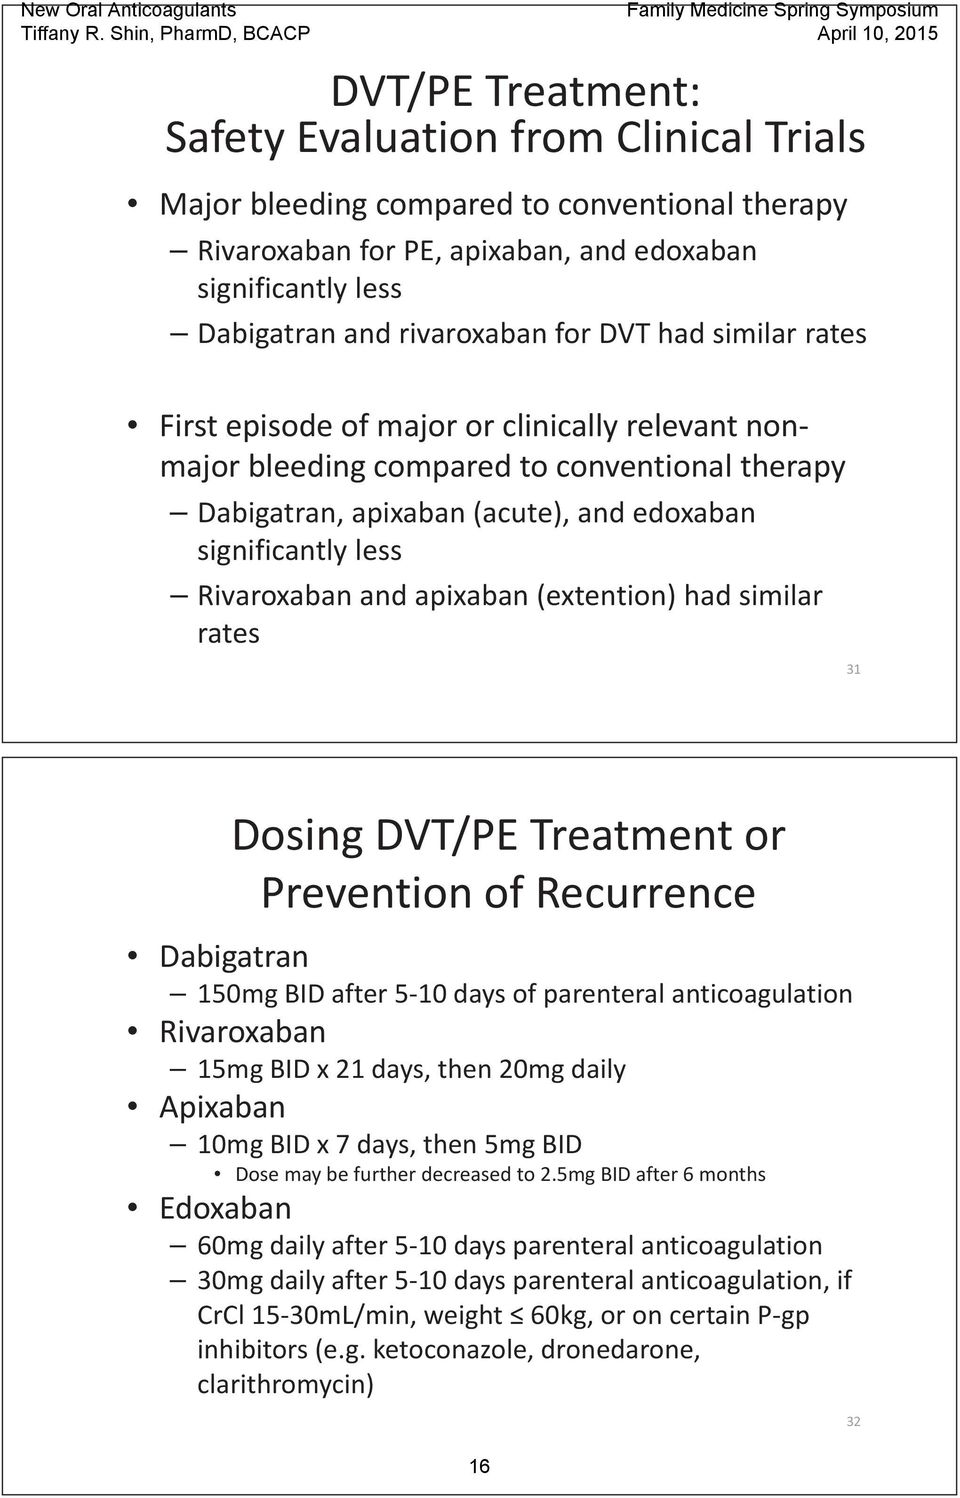 apixaban (extention) had similar rates 31 Dosing DVT/PE Treatment or Prevention of Recurrence Dabigatran 150mg BID after 5 10 days of parenteral anticoagulation Rivaroxaban 15mg BID x 21 days, then